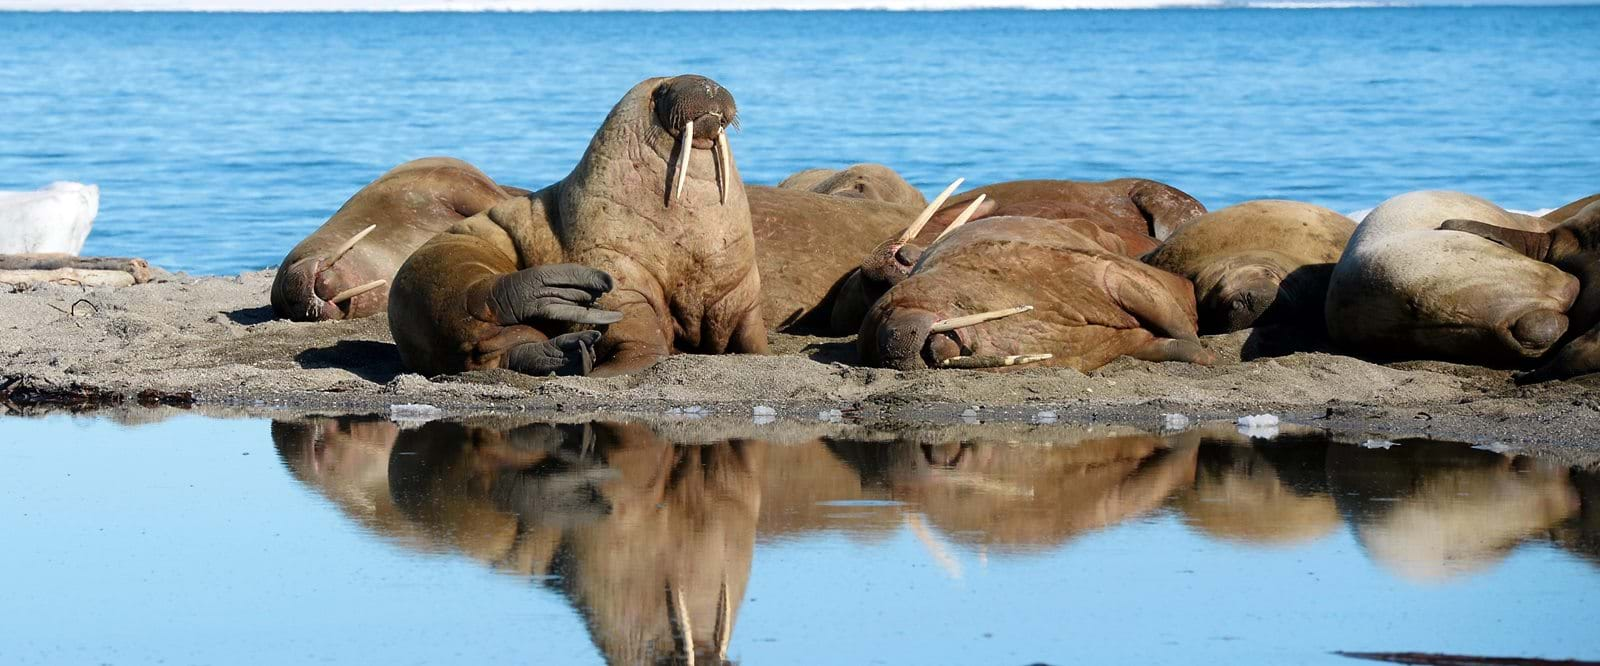 Walrus, Svalbard, Arctic cruise, expedition cruise